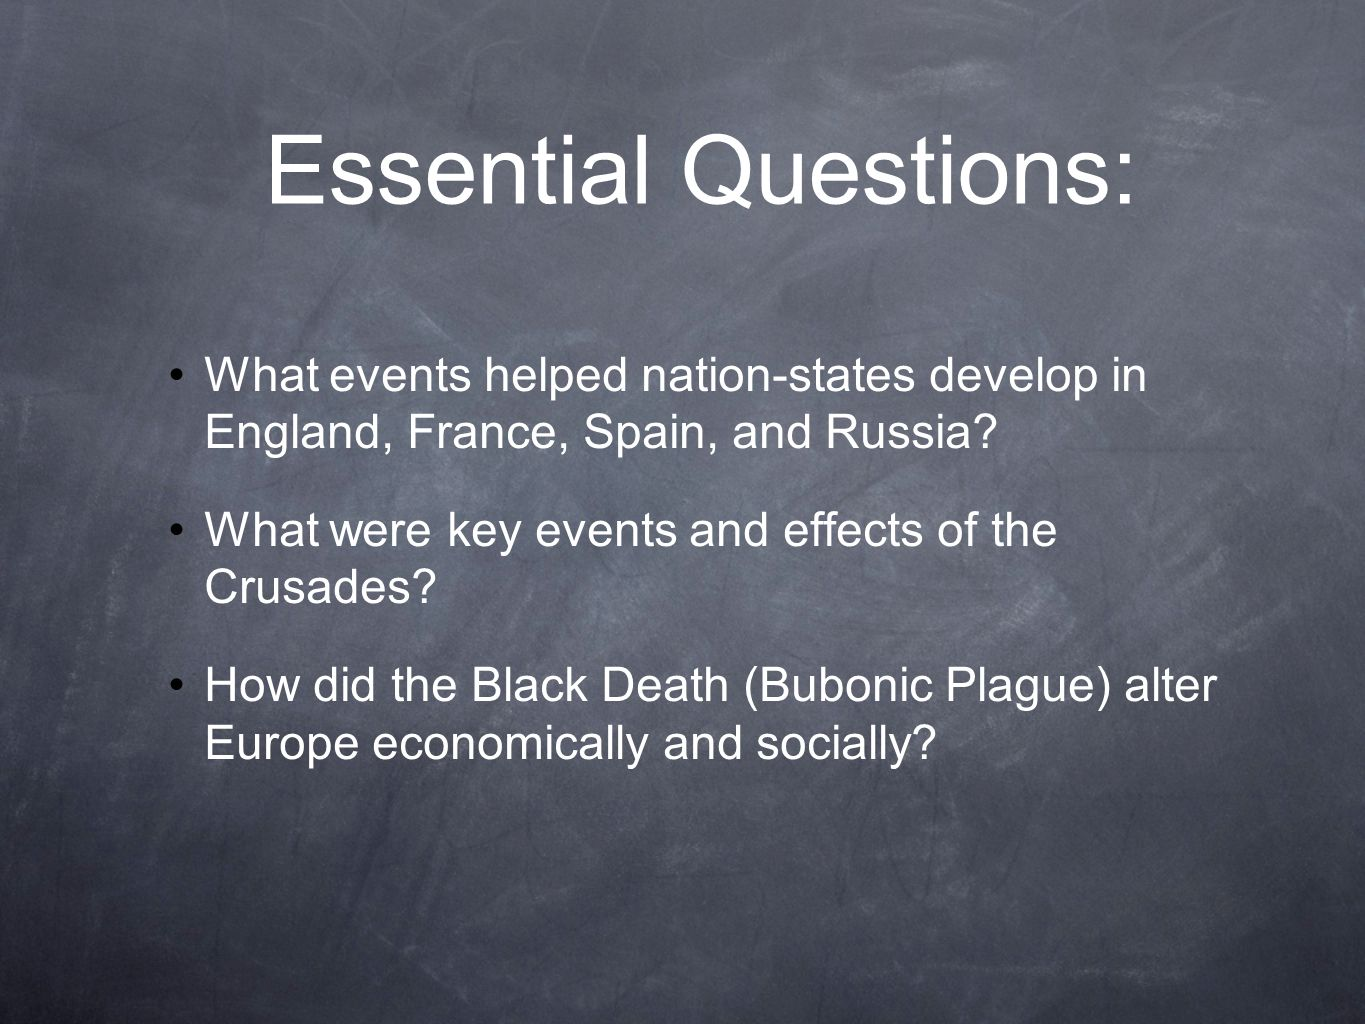 Essential Questions: What events helped nation-states develop in England, France, Spain, and Russia